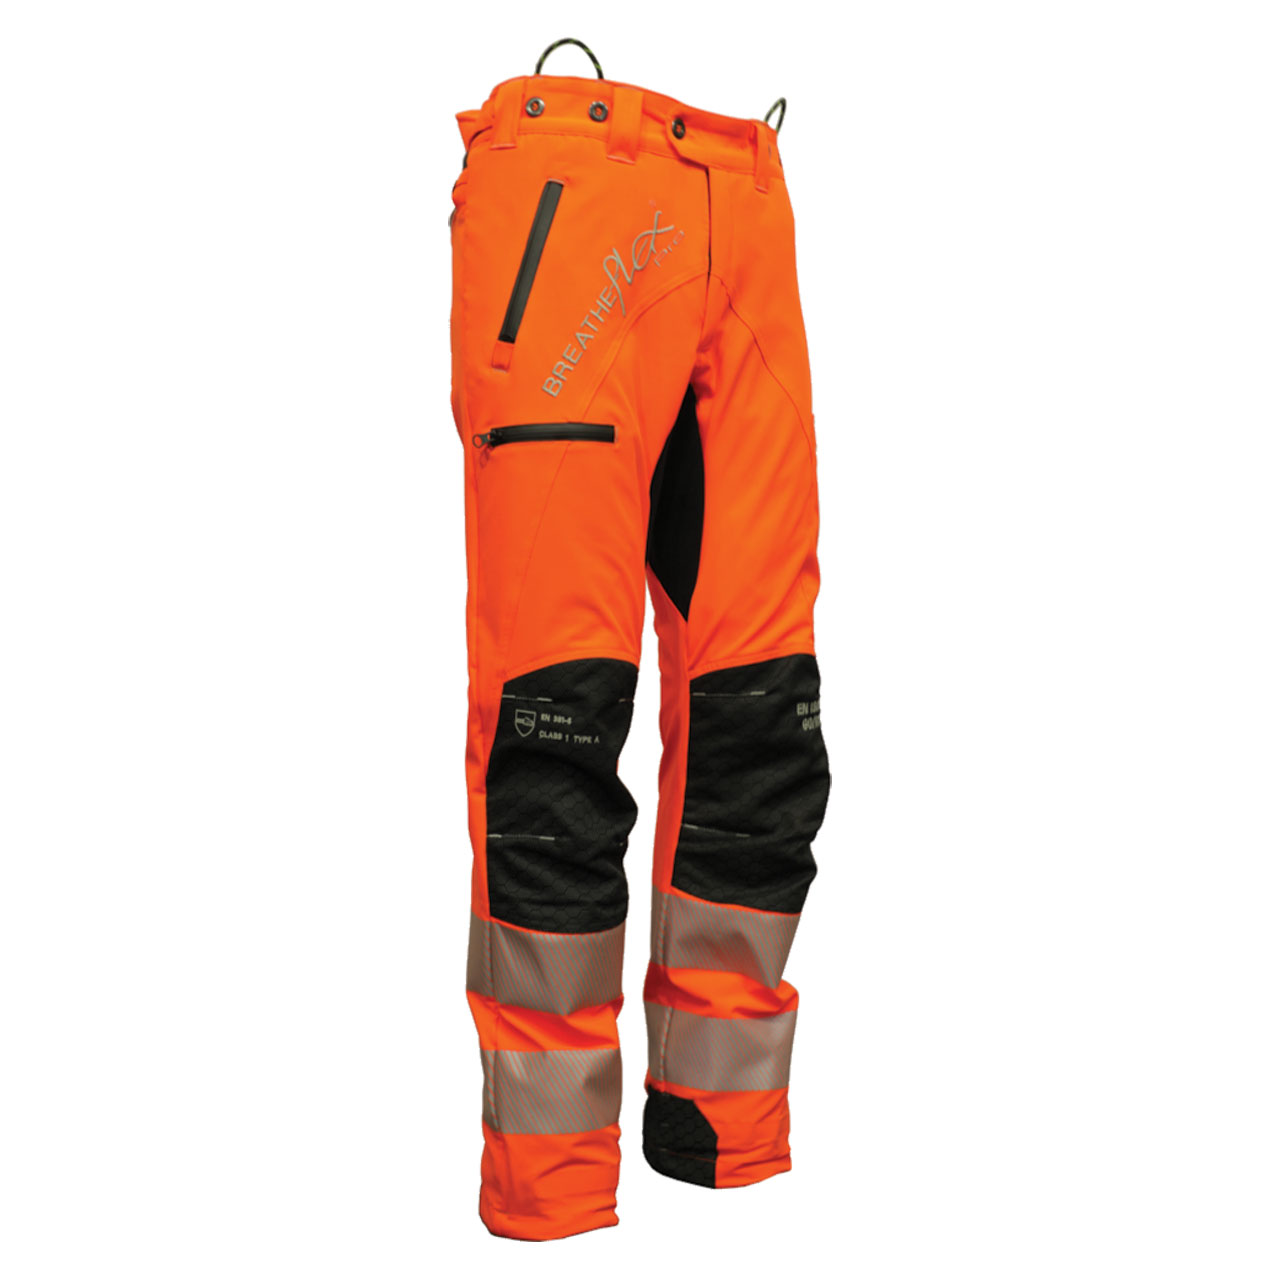 Medium Gloves and Helmet Chainsaw Safety Kit Small Trousers